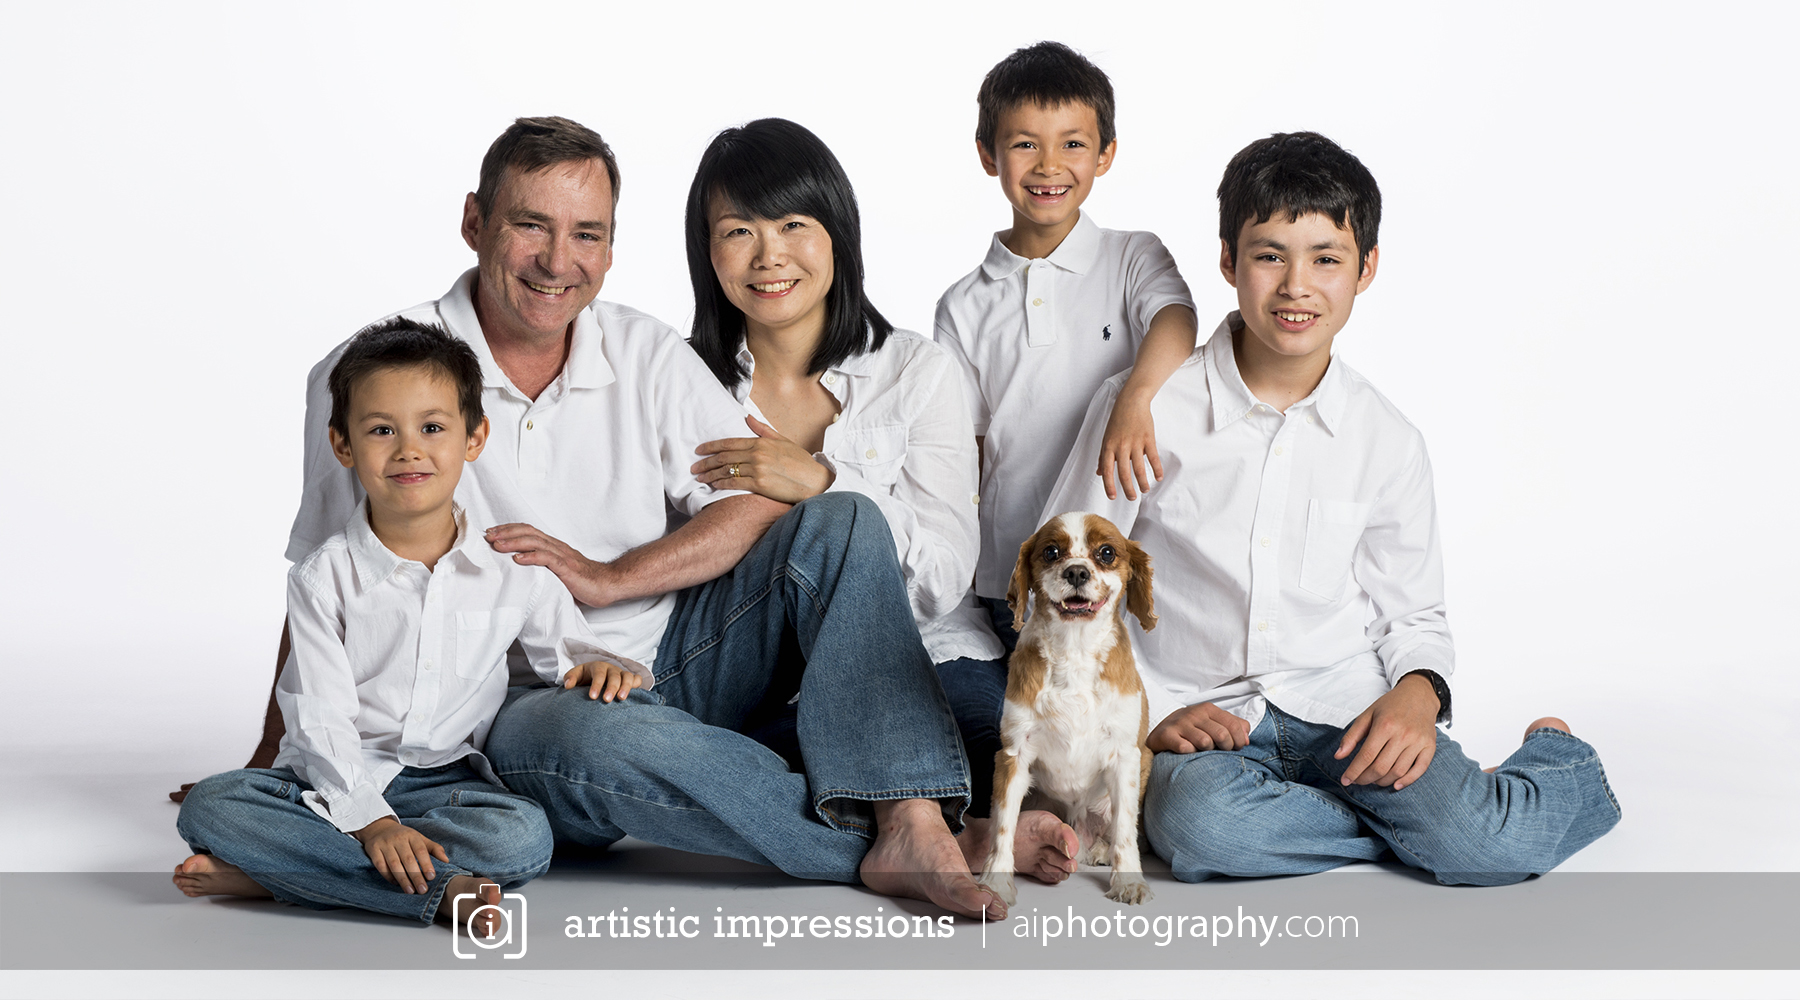 Winnipeg photographer of family and children portrait by artistic impressions photography